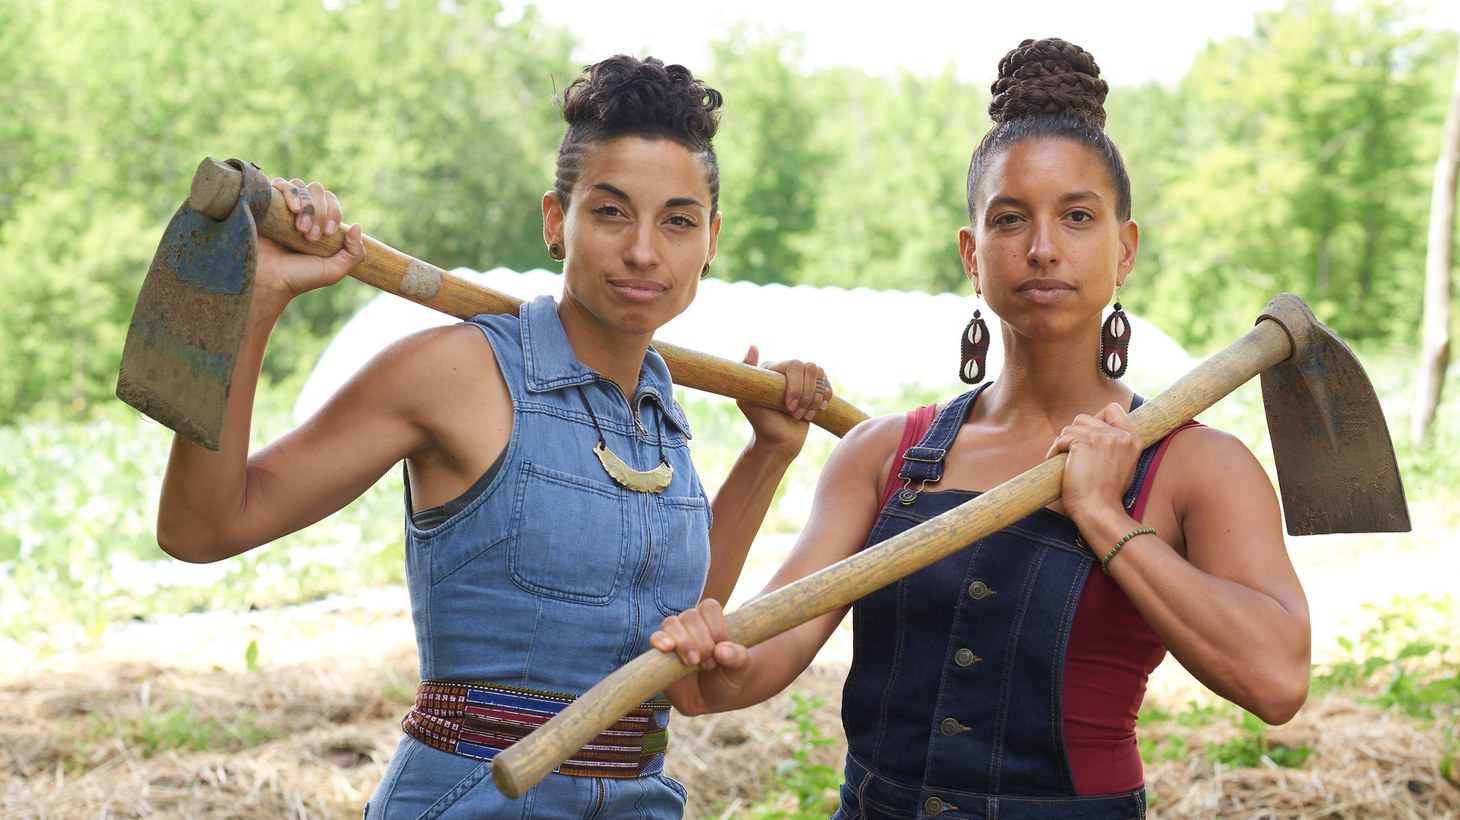 Naima Penniman (left) and Leah Penniman work at Soul Fire Farm, an Afro-Indigenous-centered community farm in upstate New York, and are looking to change the narrative about farming and agriculture.